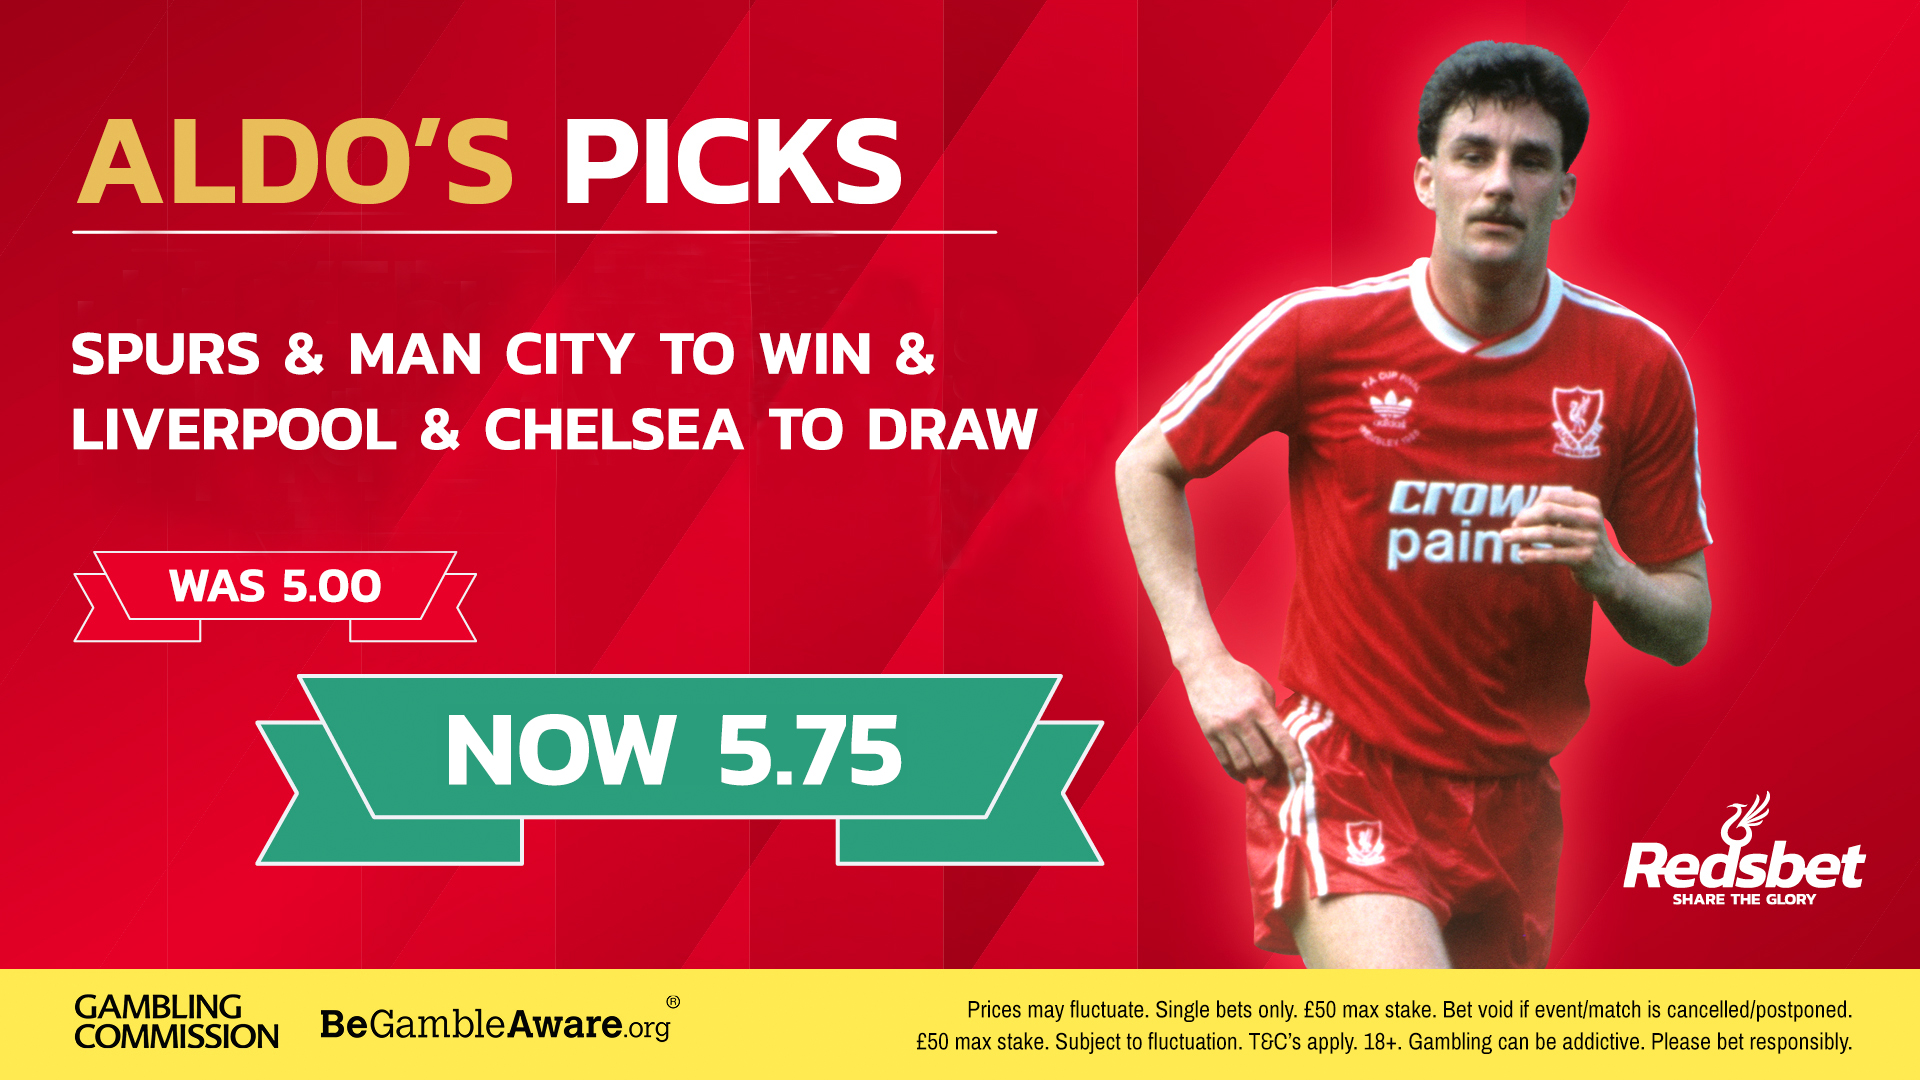 ALDO'S PICKS: Take a look at John Aldridge's tips this weekend with RedsBet